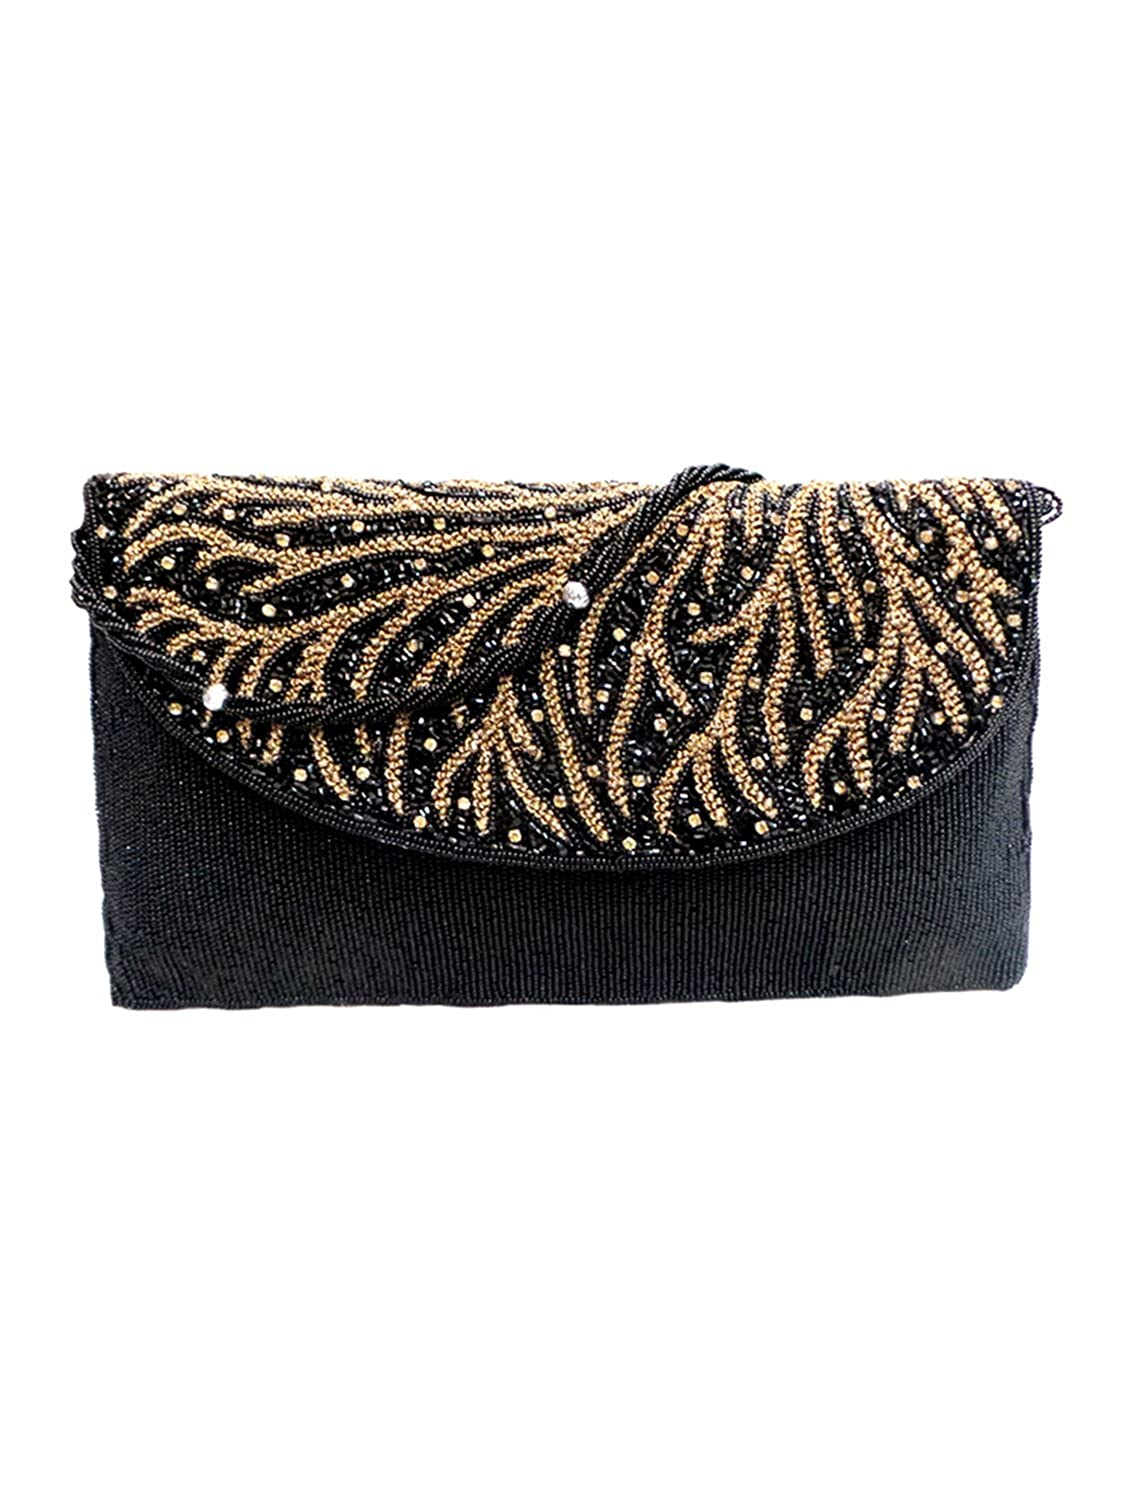 Bhamini Autumn Bead Clutch (Black)